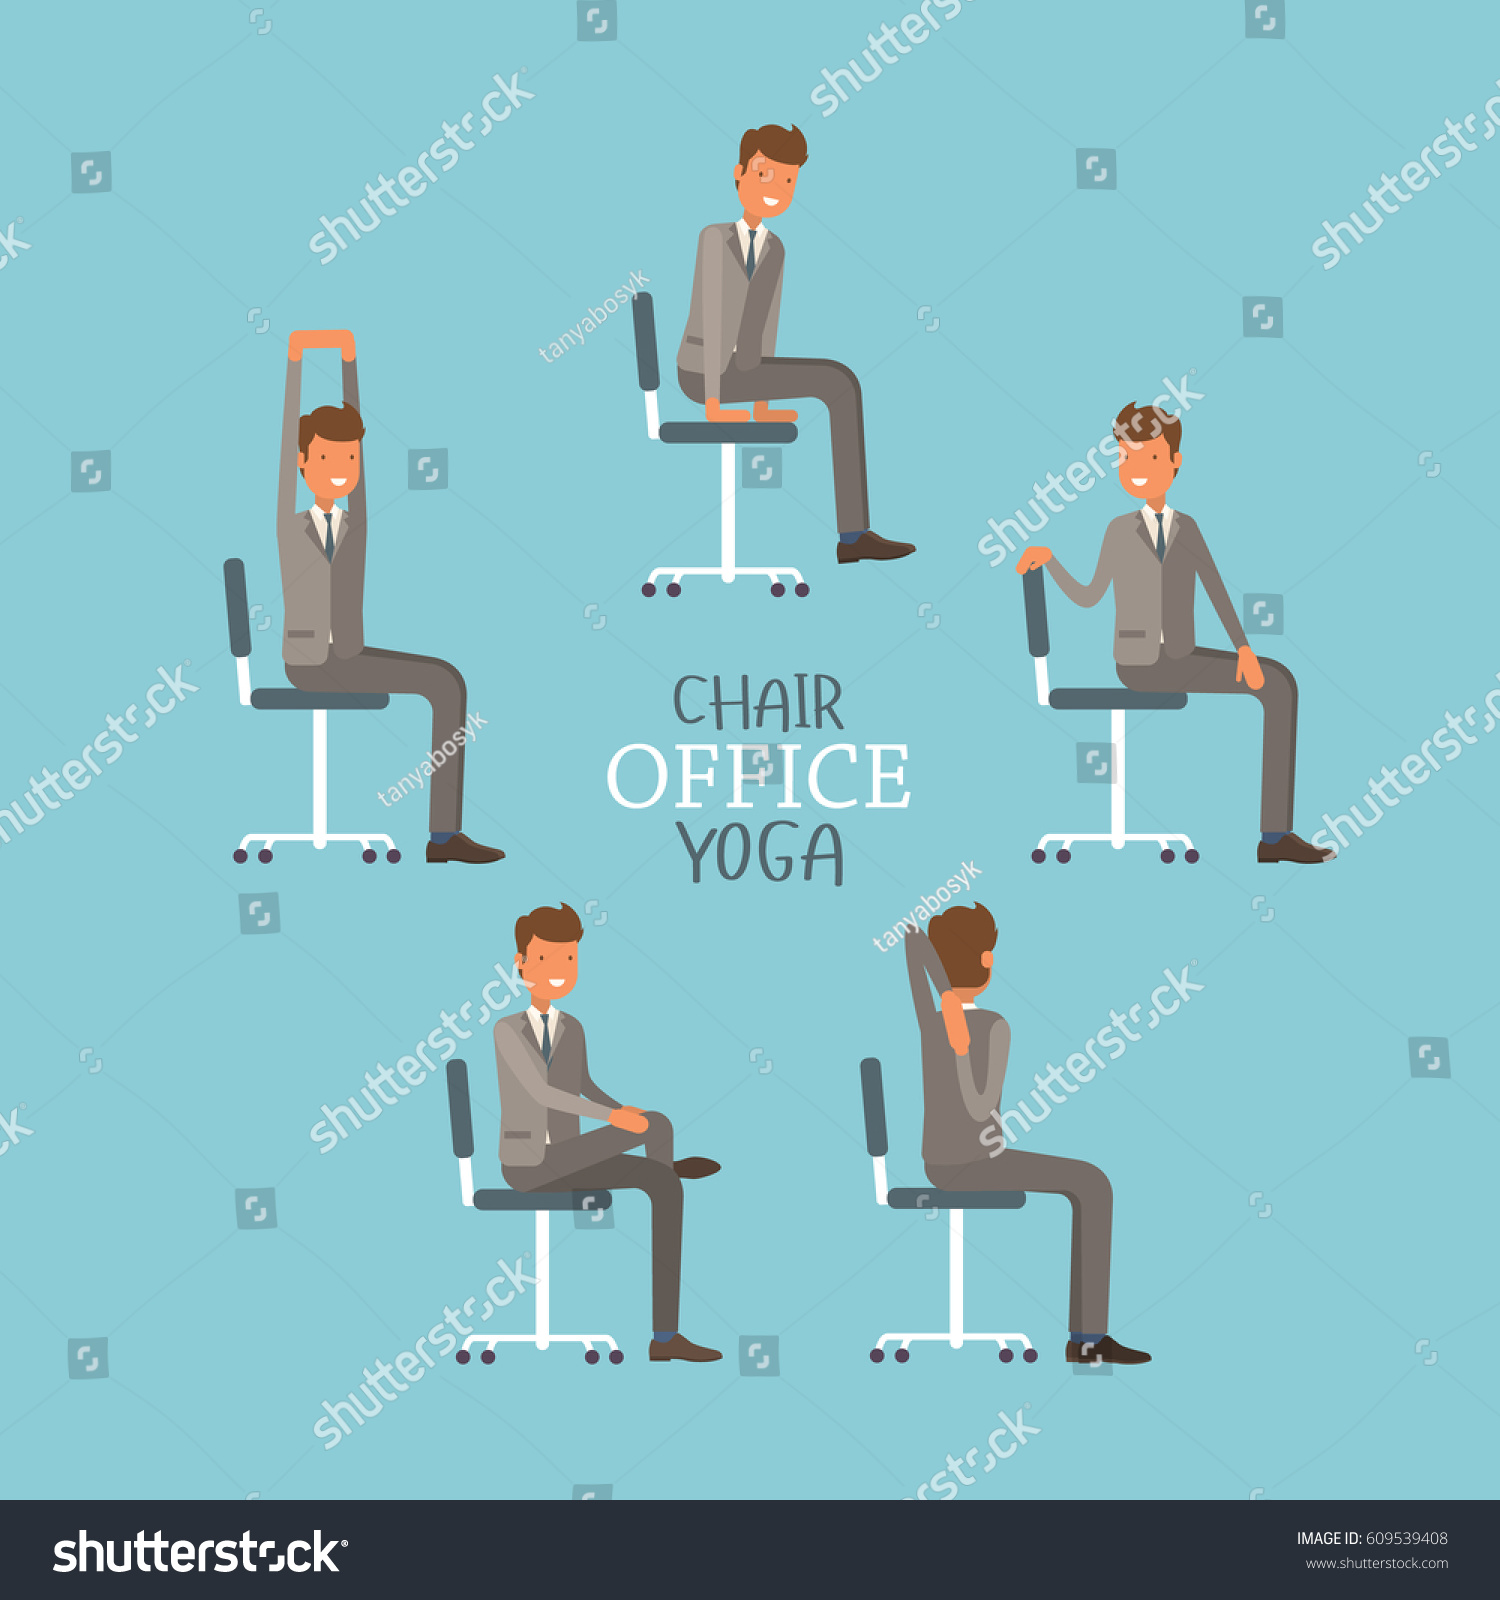 Office Chair Exercises Vector Illustration Office Chair Yoga Businessman Stock